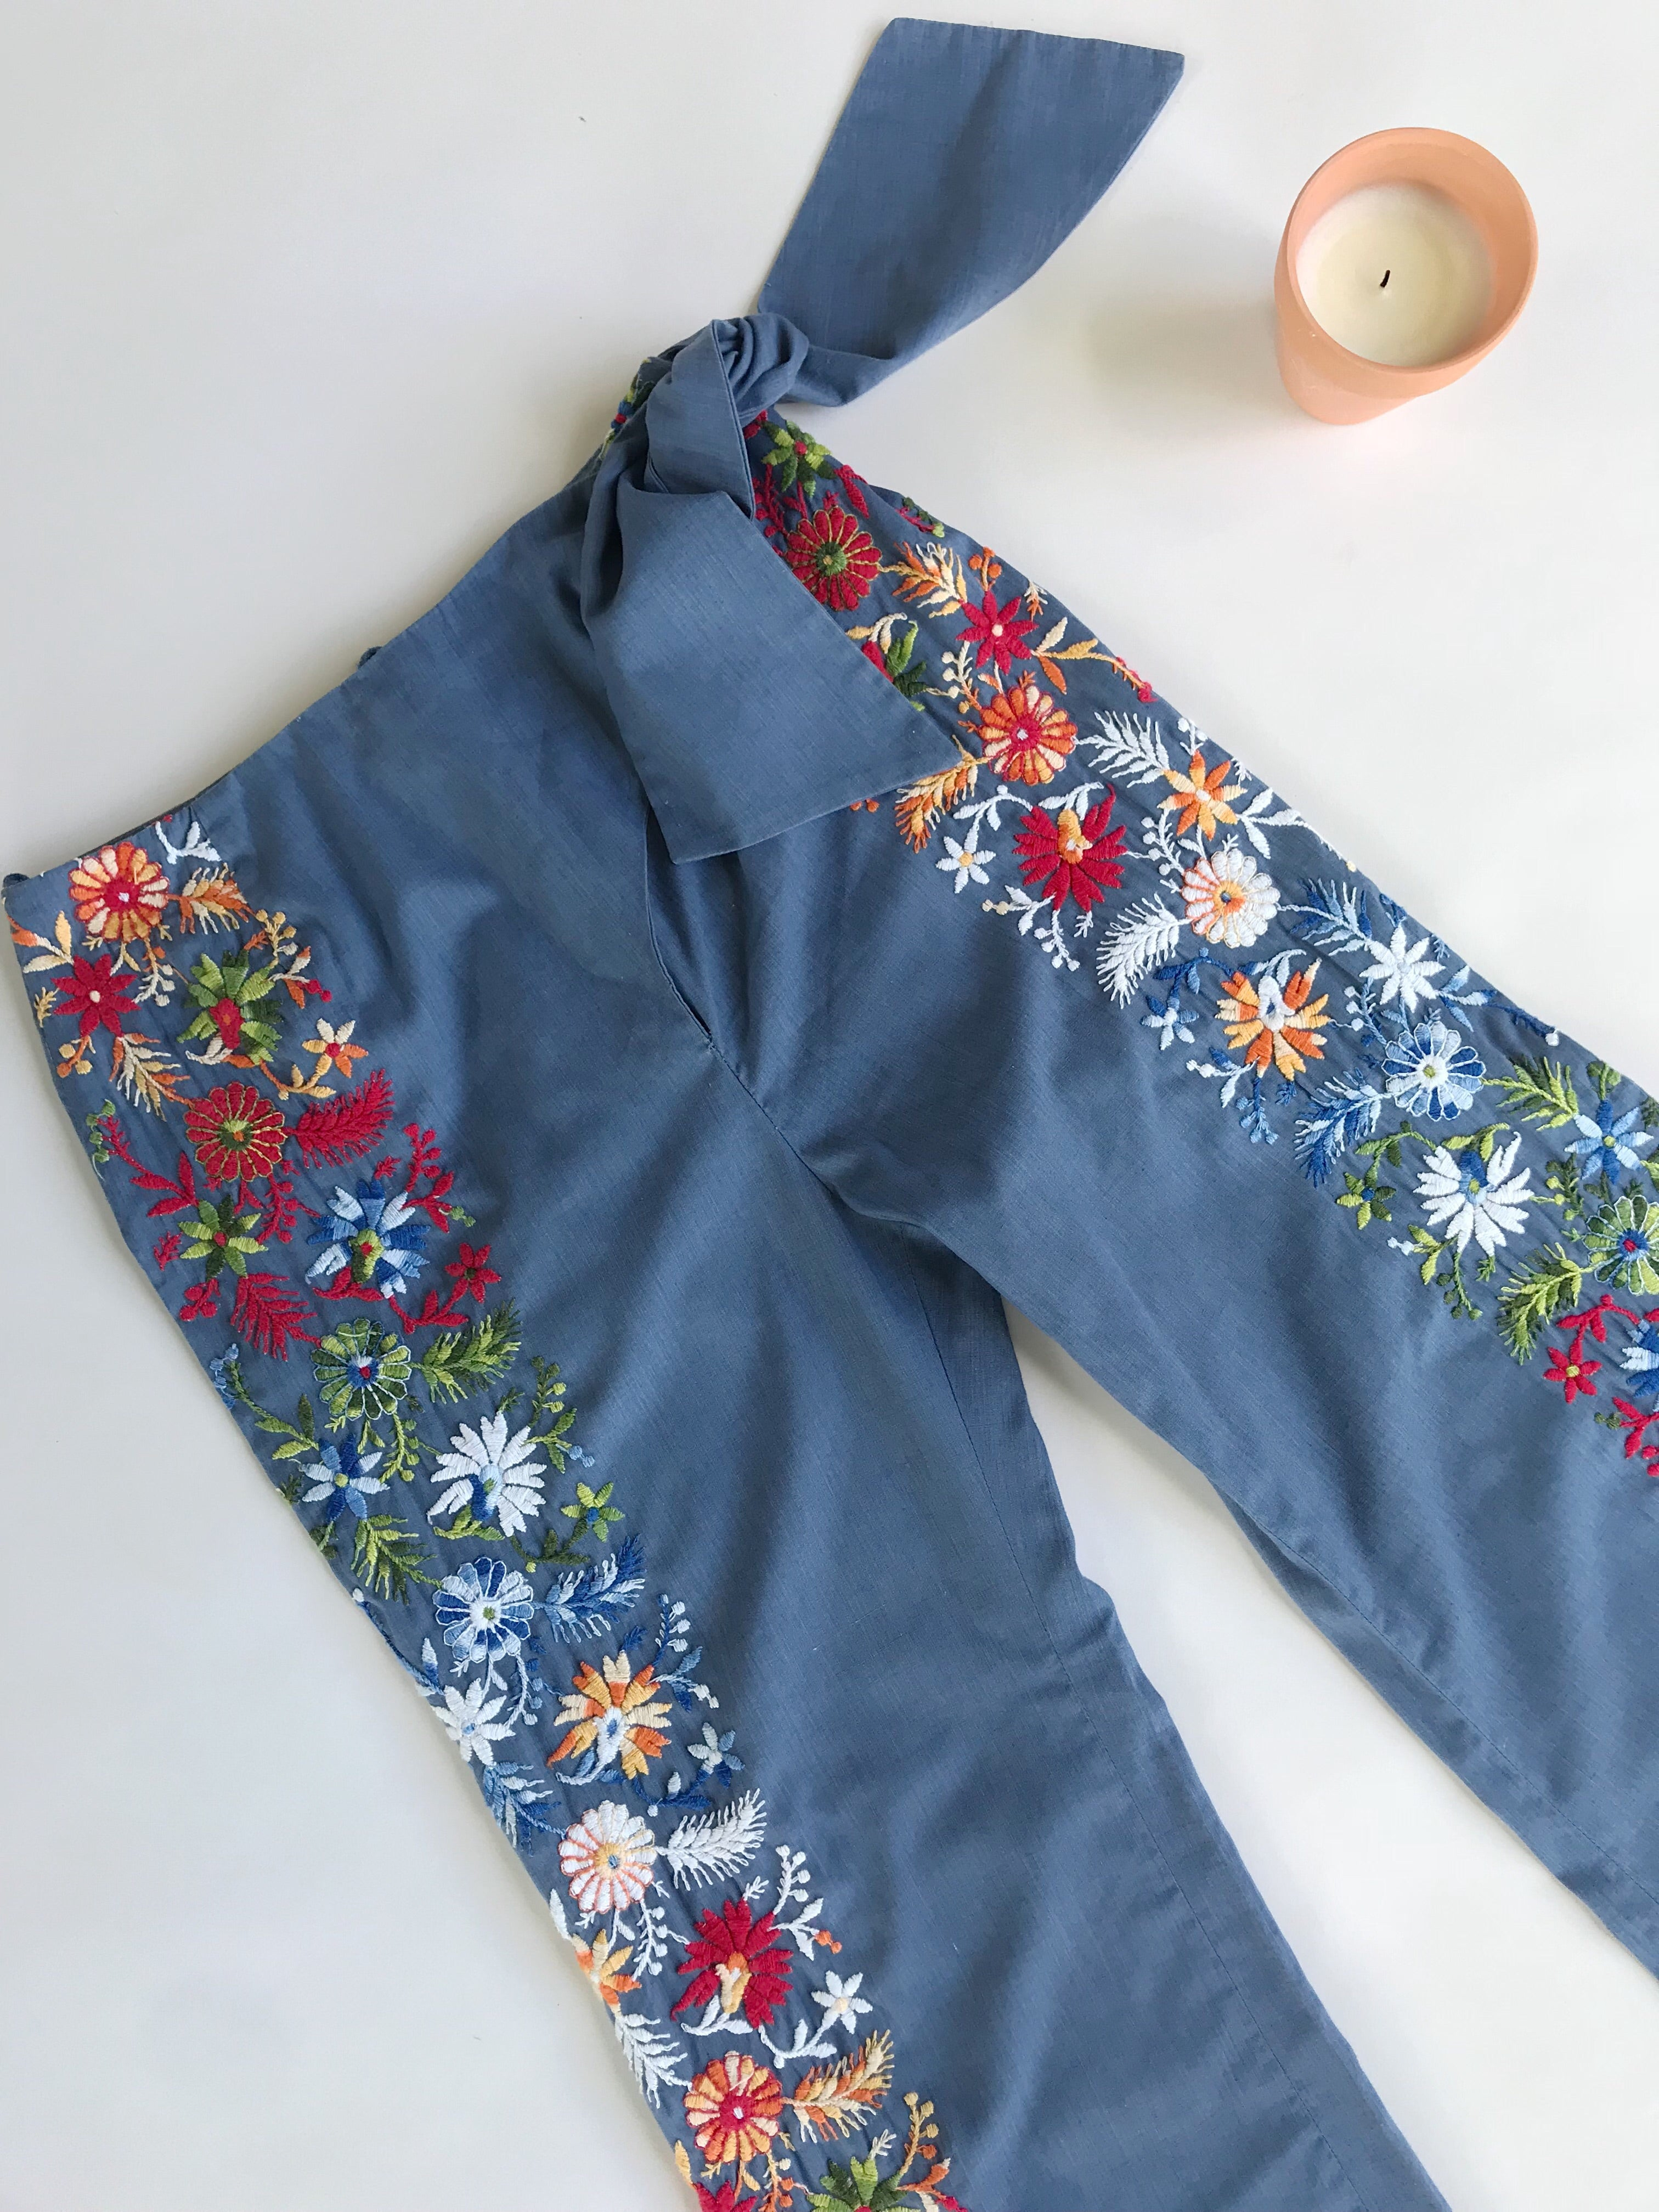 1970s Handmade Floral Embroidered Pants